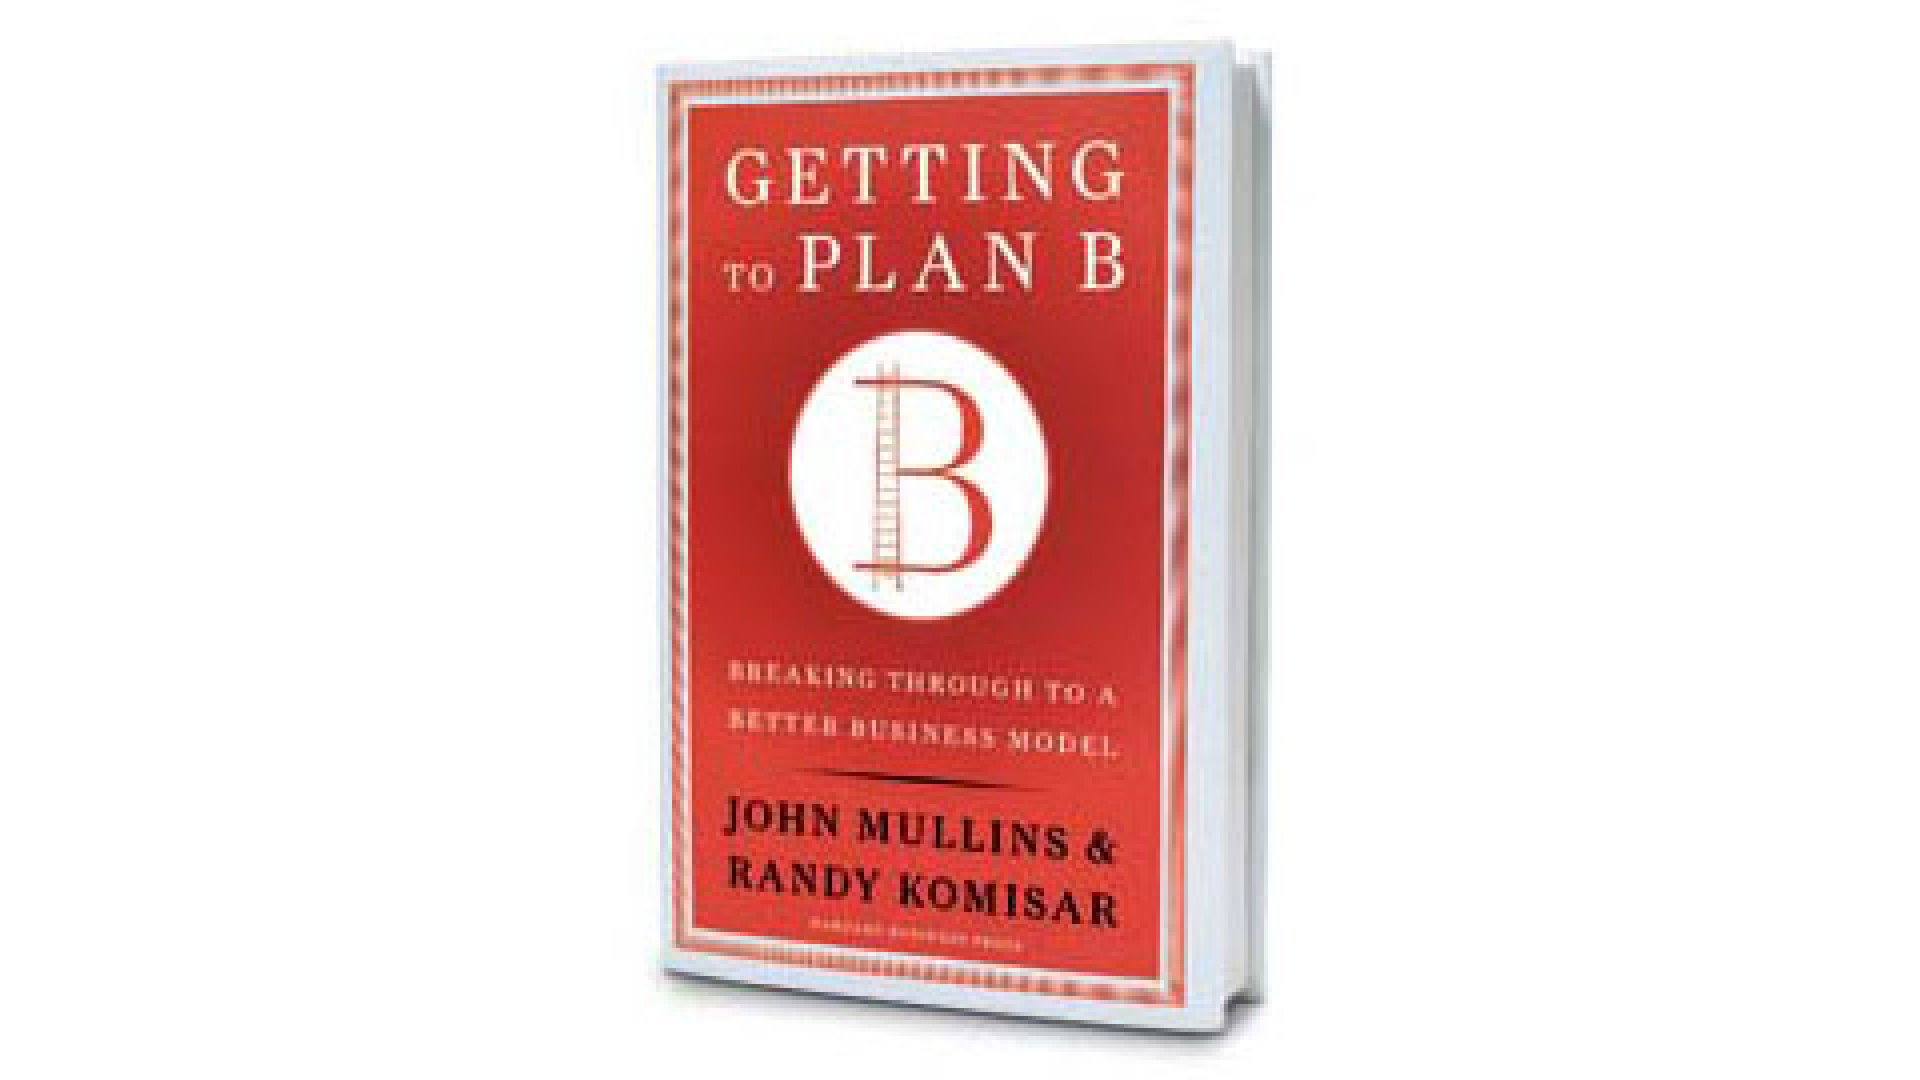 Review: Getting to Plan B